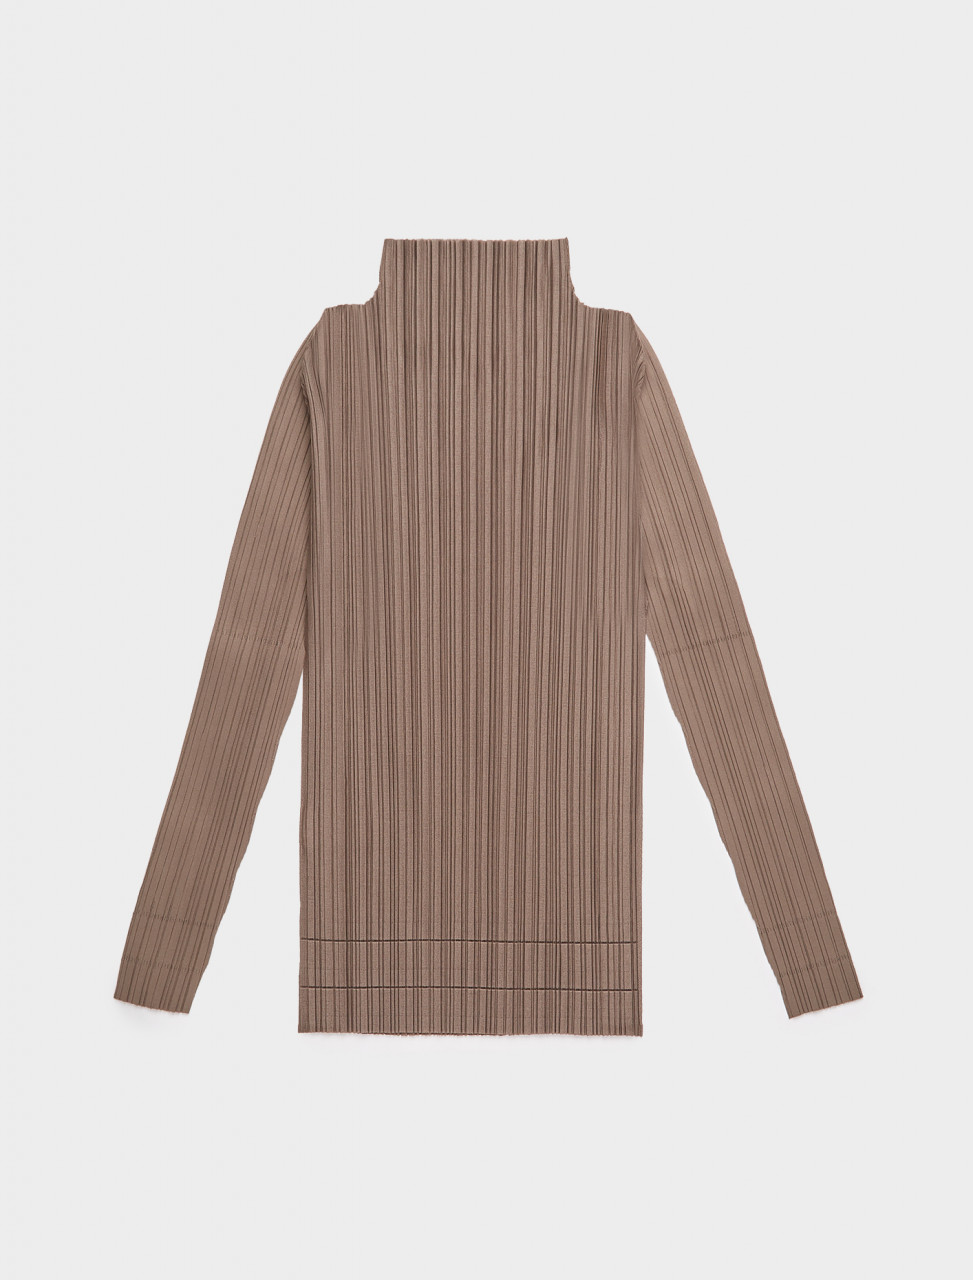 PP08JK856-16 PLEATS PLEASE ISSEY MIYAKE HIGH NECK A POC PLEATS TOP BROWN